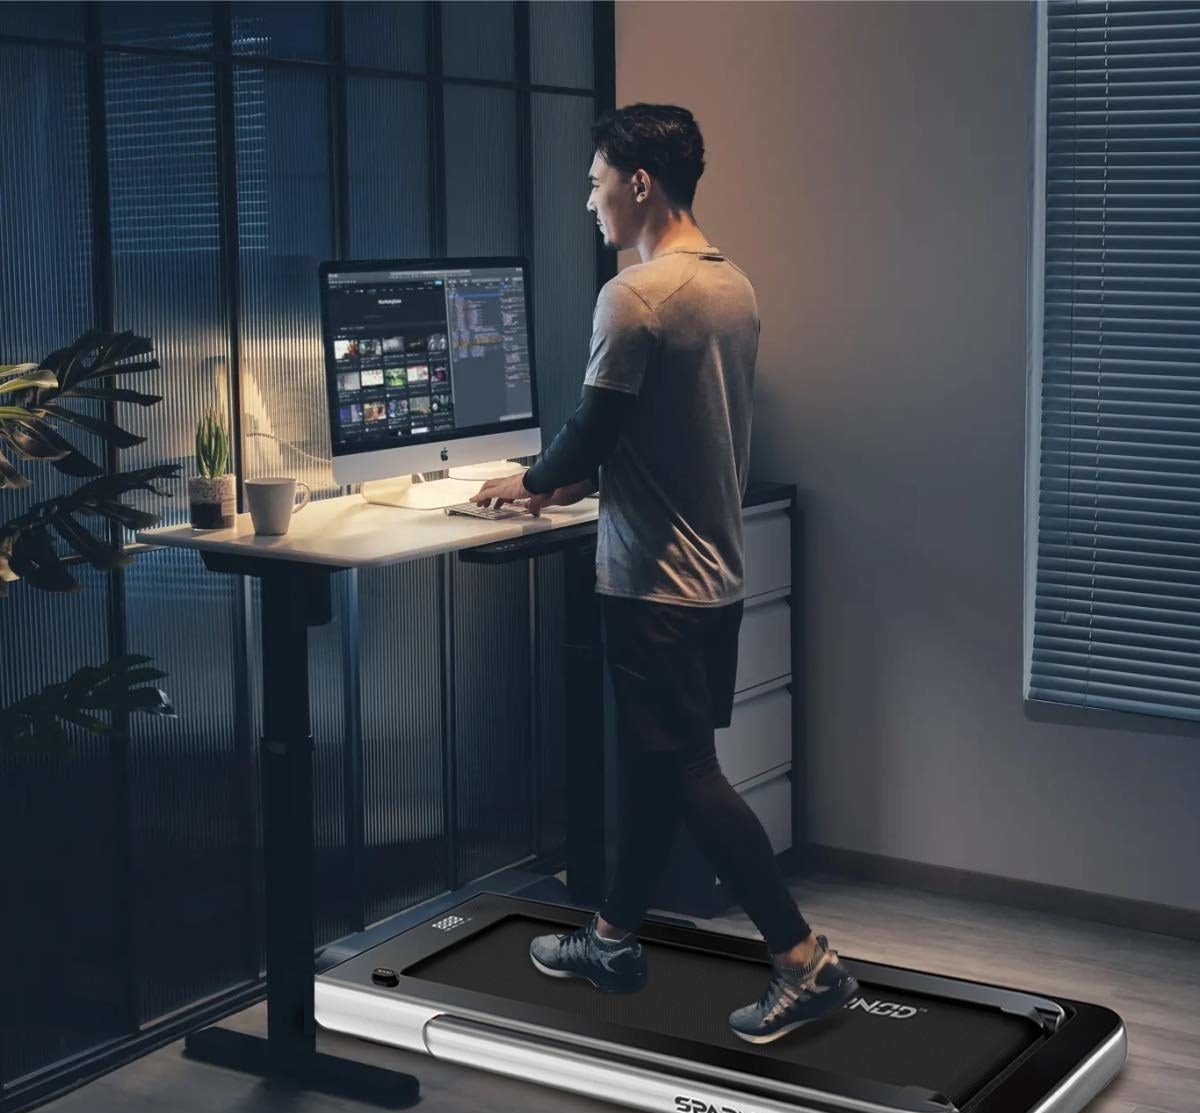 A person walking on the walking pad in front of their standing desk and working.